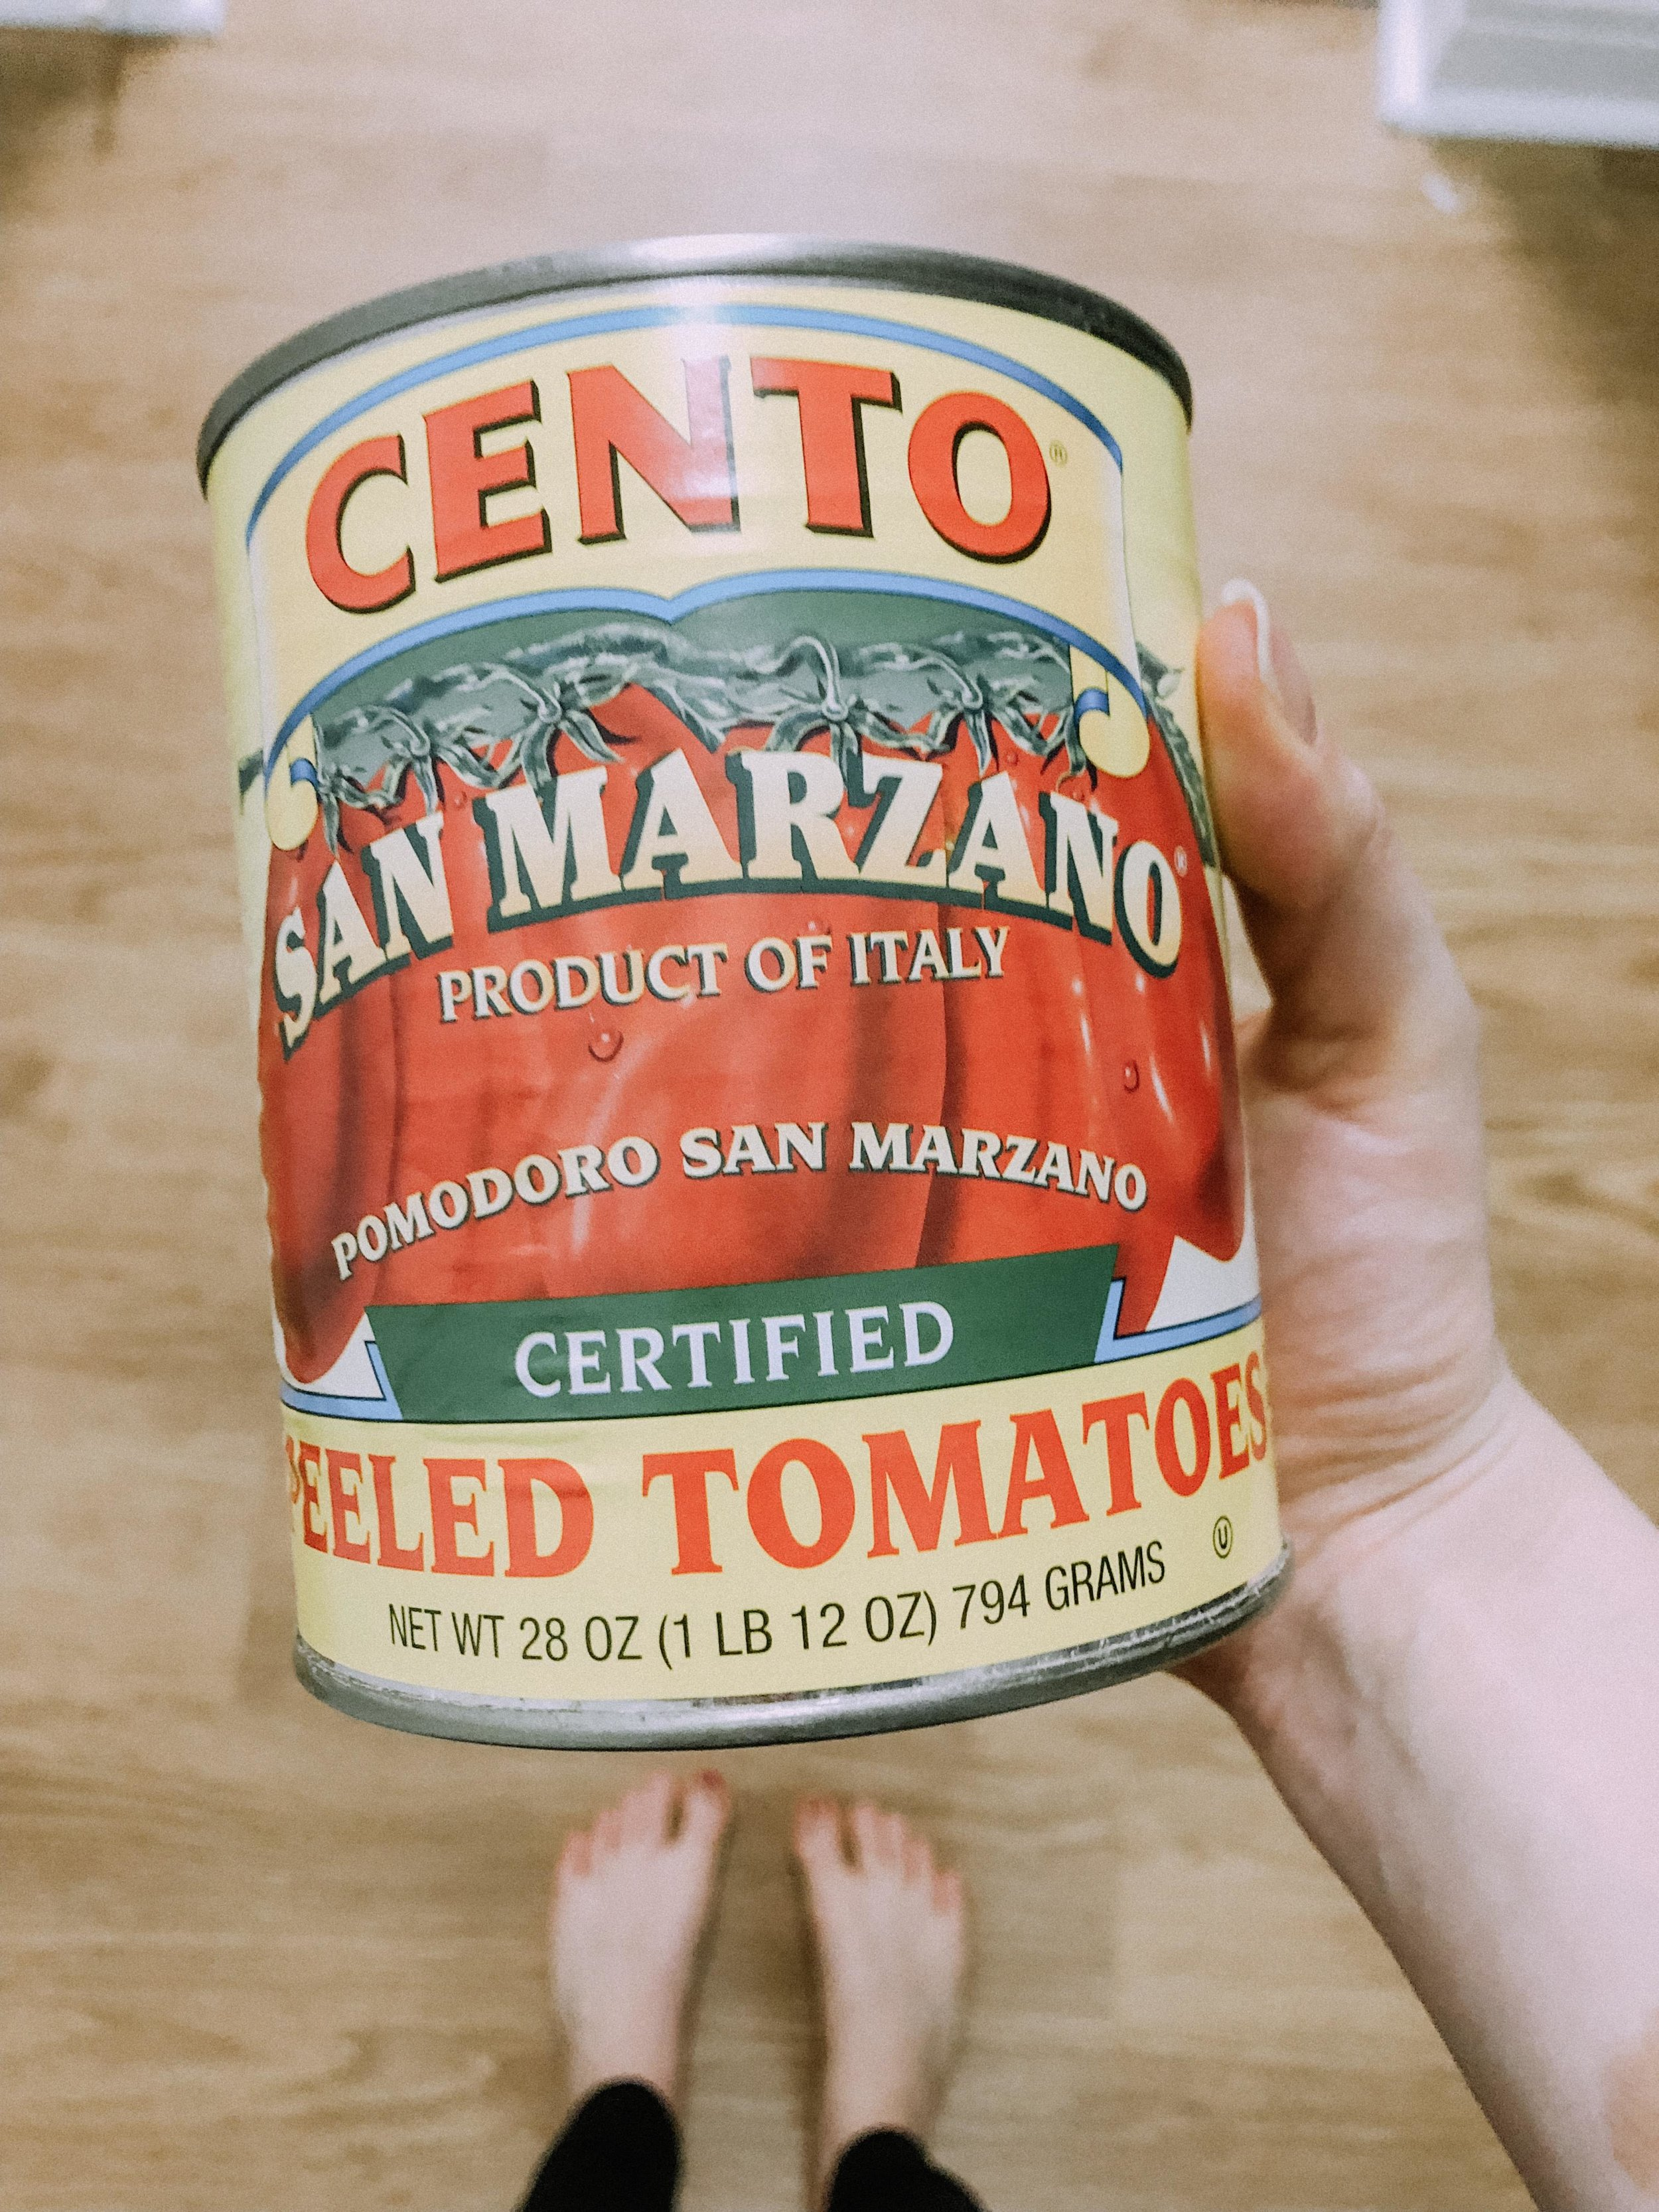 We get these tomatoes from our local Trader Joe's. San Marzano tomatoes are certified for their quality and you can taste the difference.